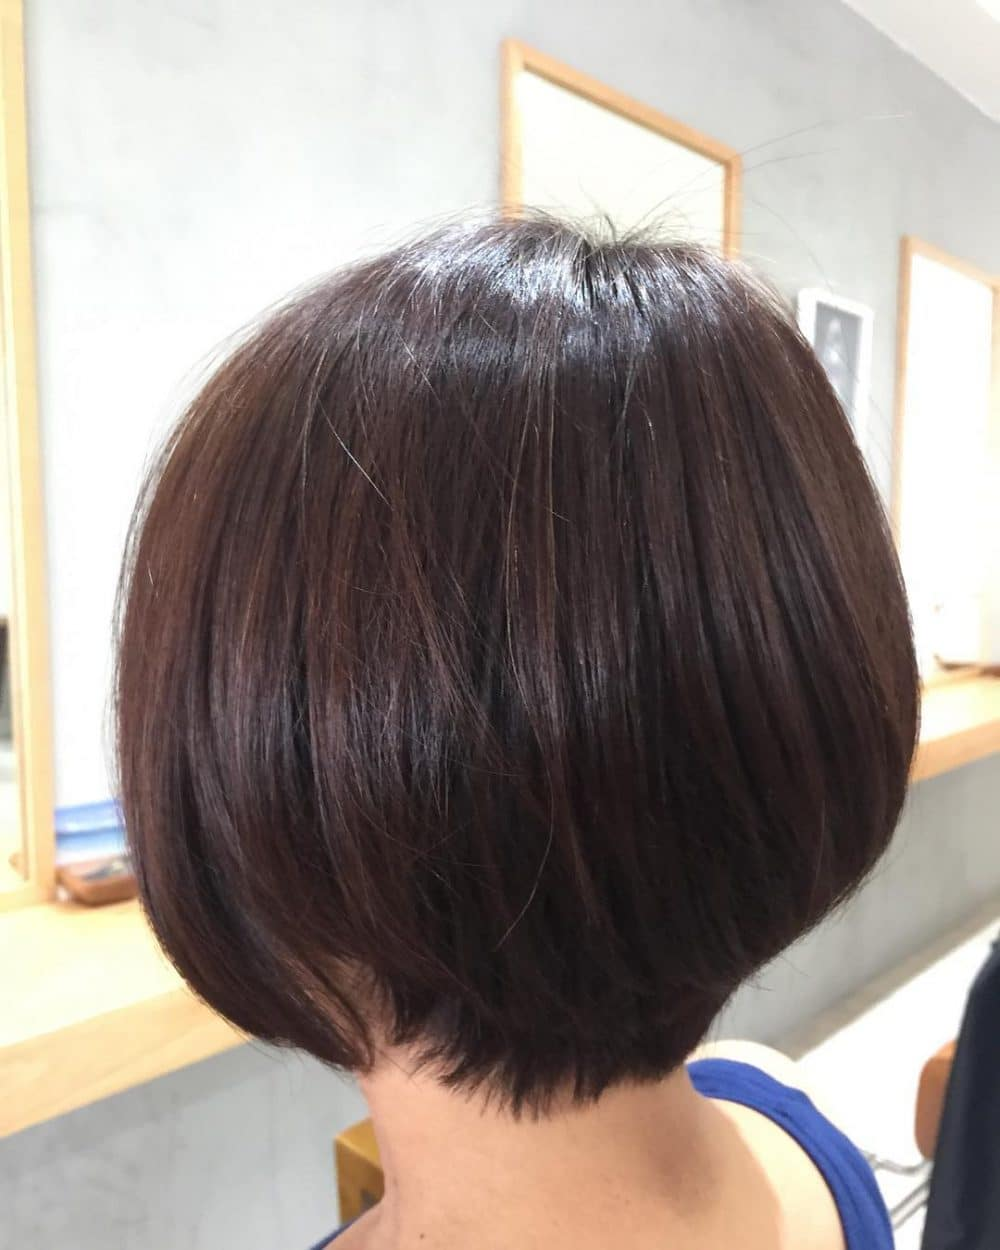 43 Youthful Short Hairstyles For Women Over 50